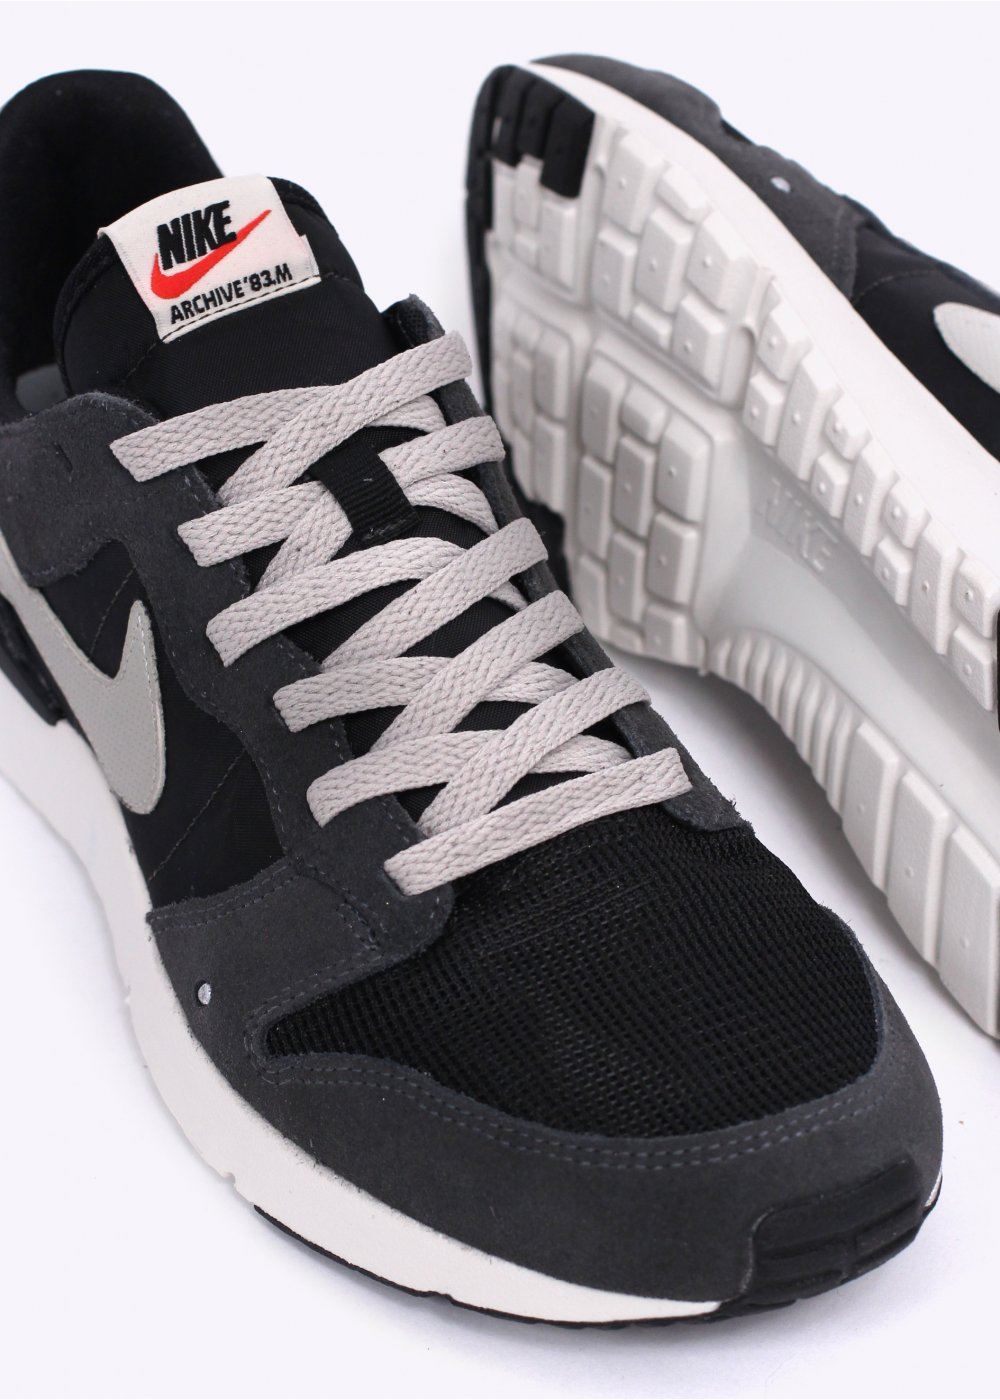 buy popular 4cffb 18b97 Archive   039 83.M Trainers - Anthracite   Lunar Grey   Black